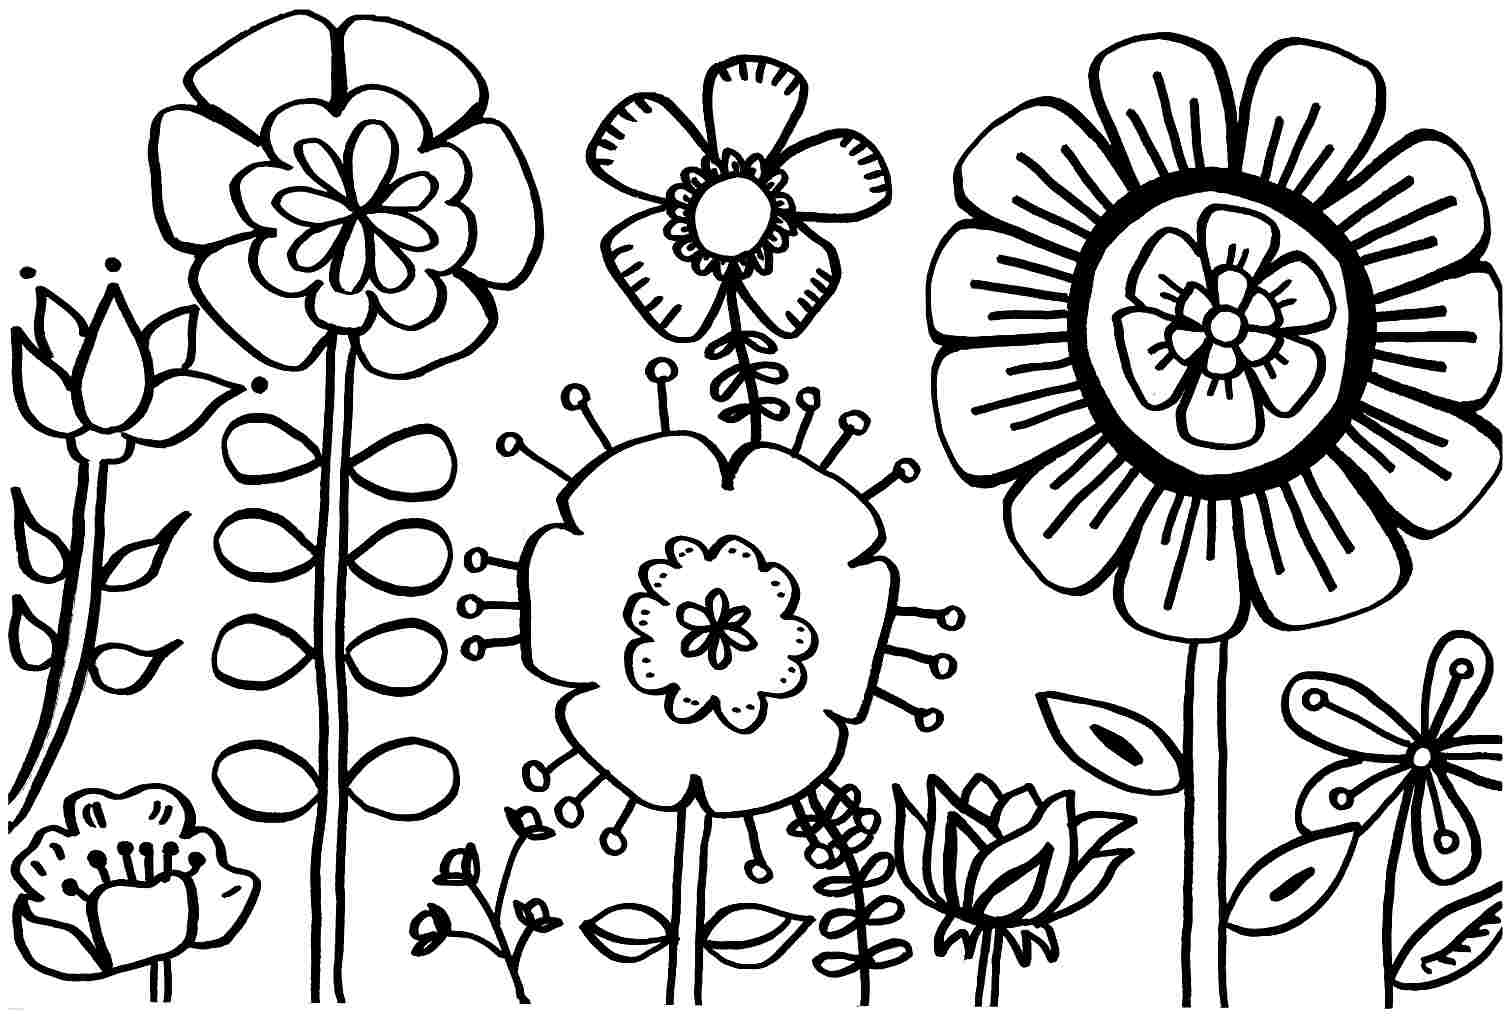 Spring Break Coloring Sheets | Coloring Online